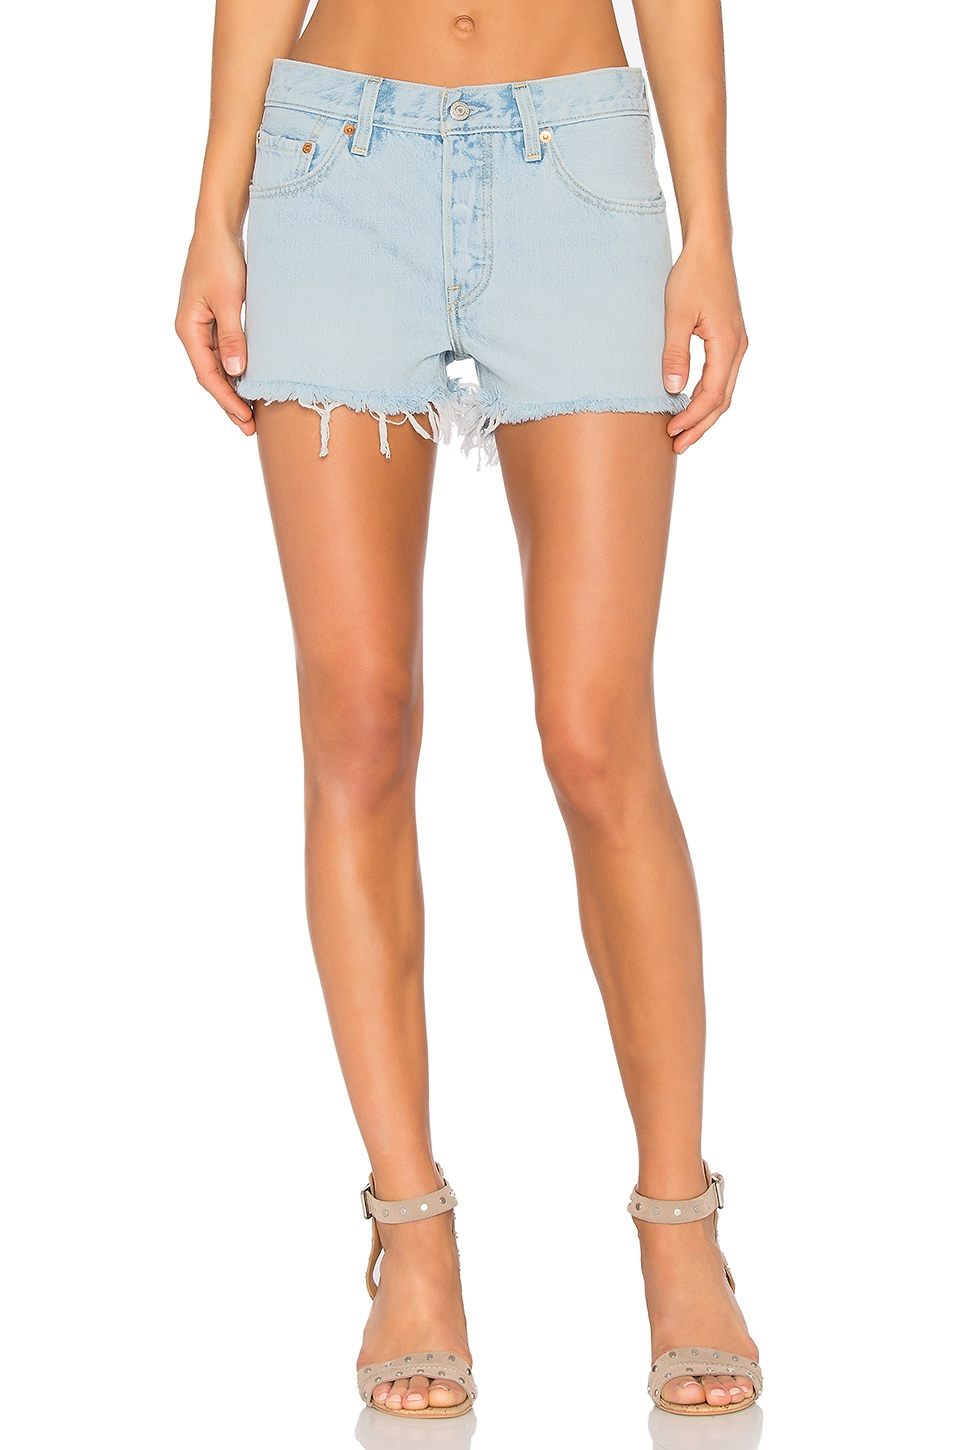 LEVI'S Classic 501 Short in Bowie Blue